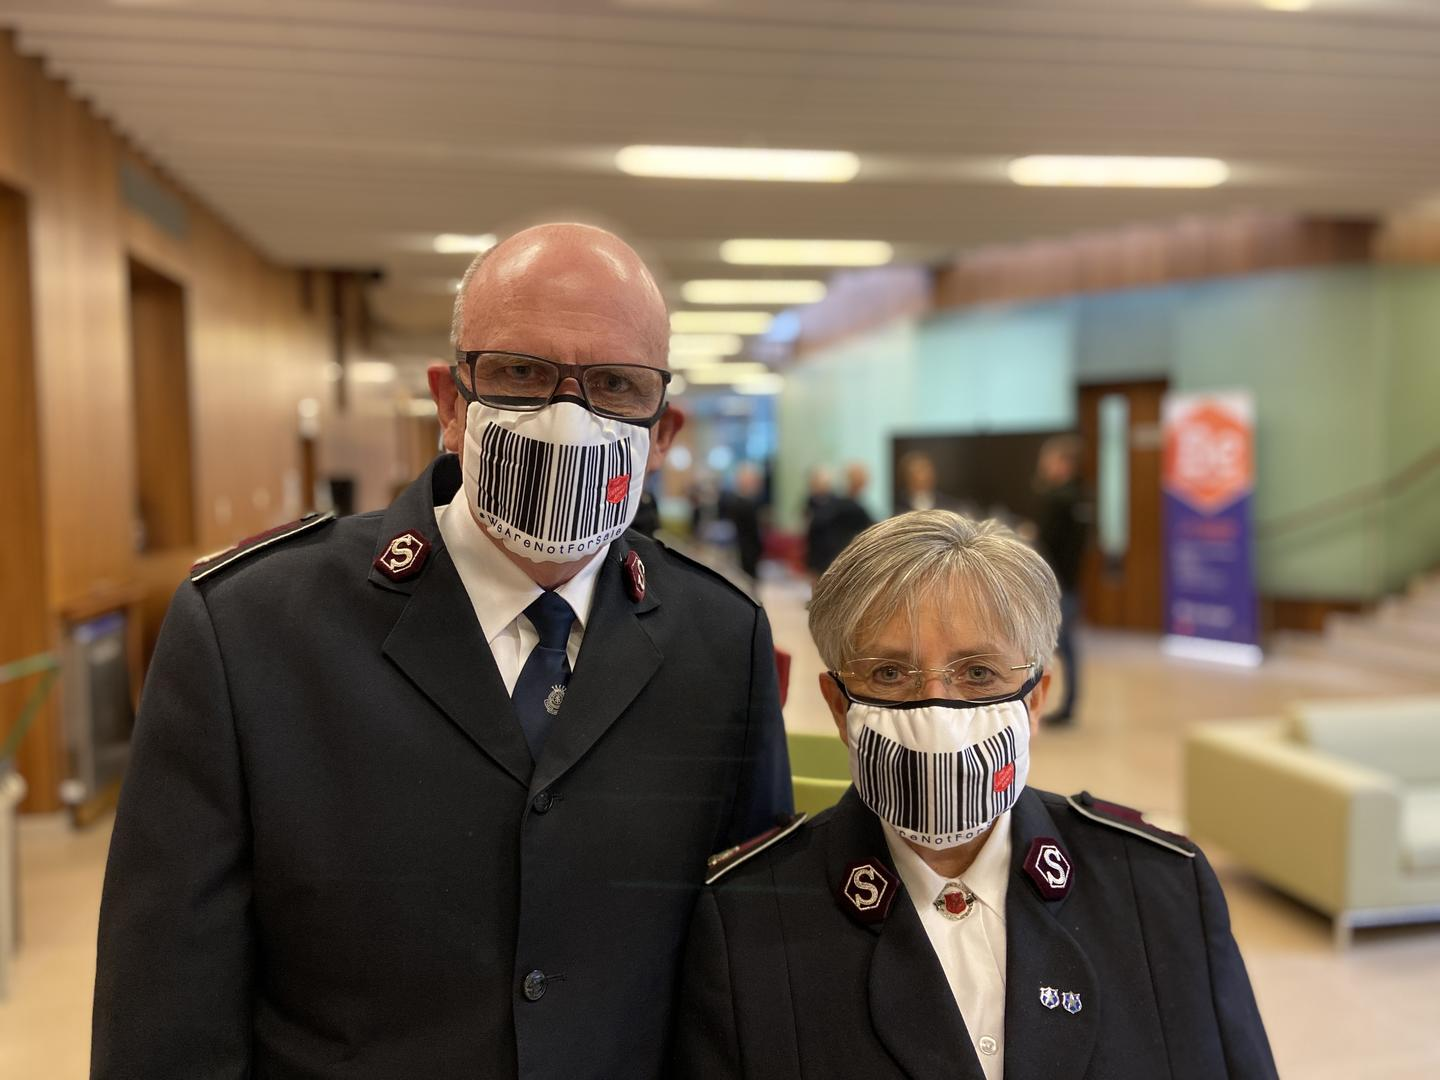 Territorial leaders wearing the #WeAreNotForSale face masks